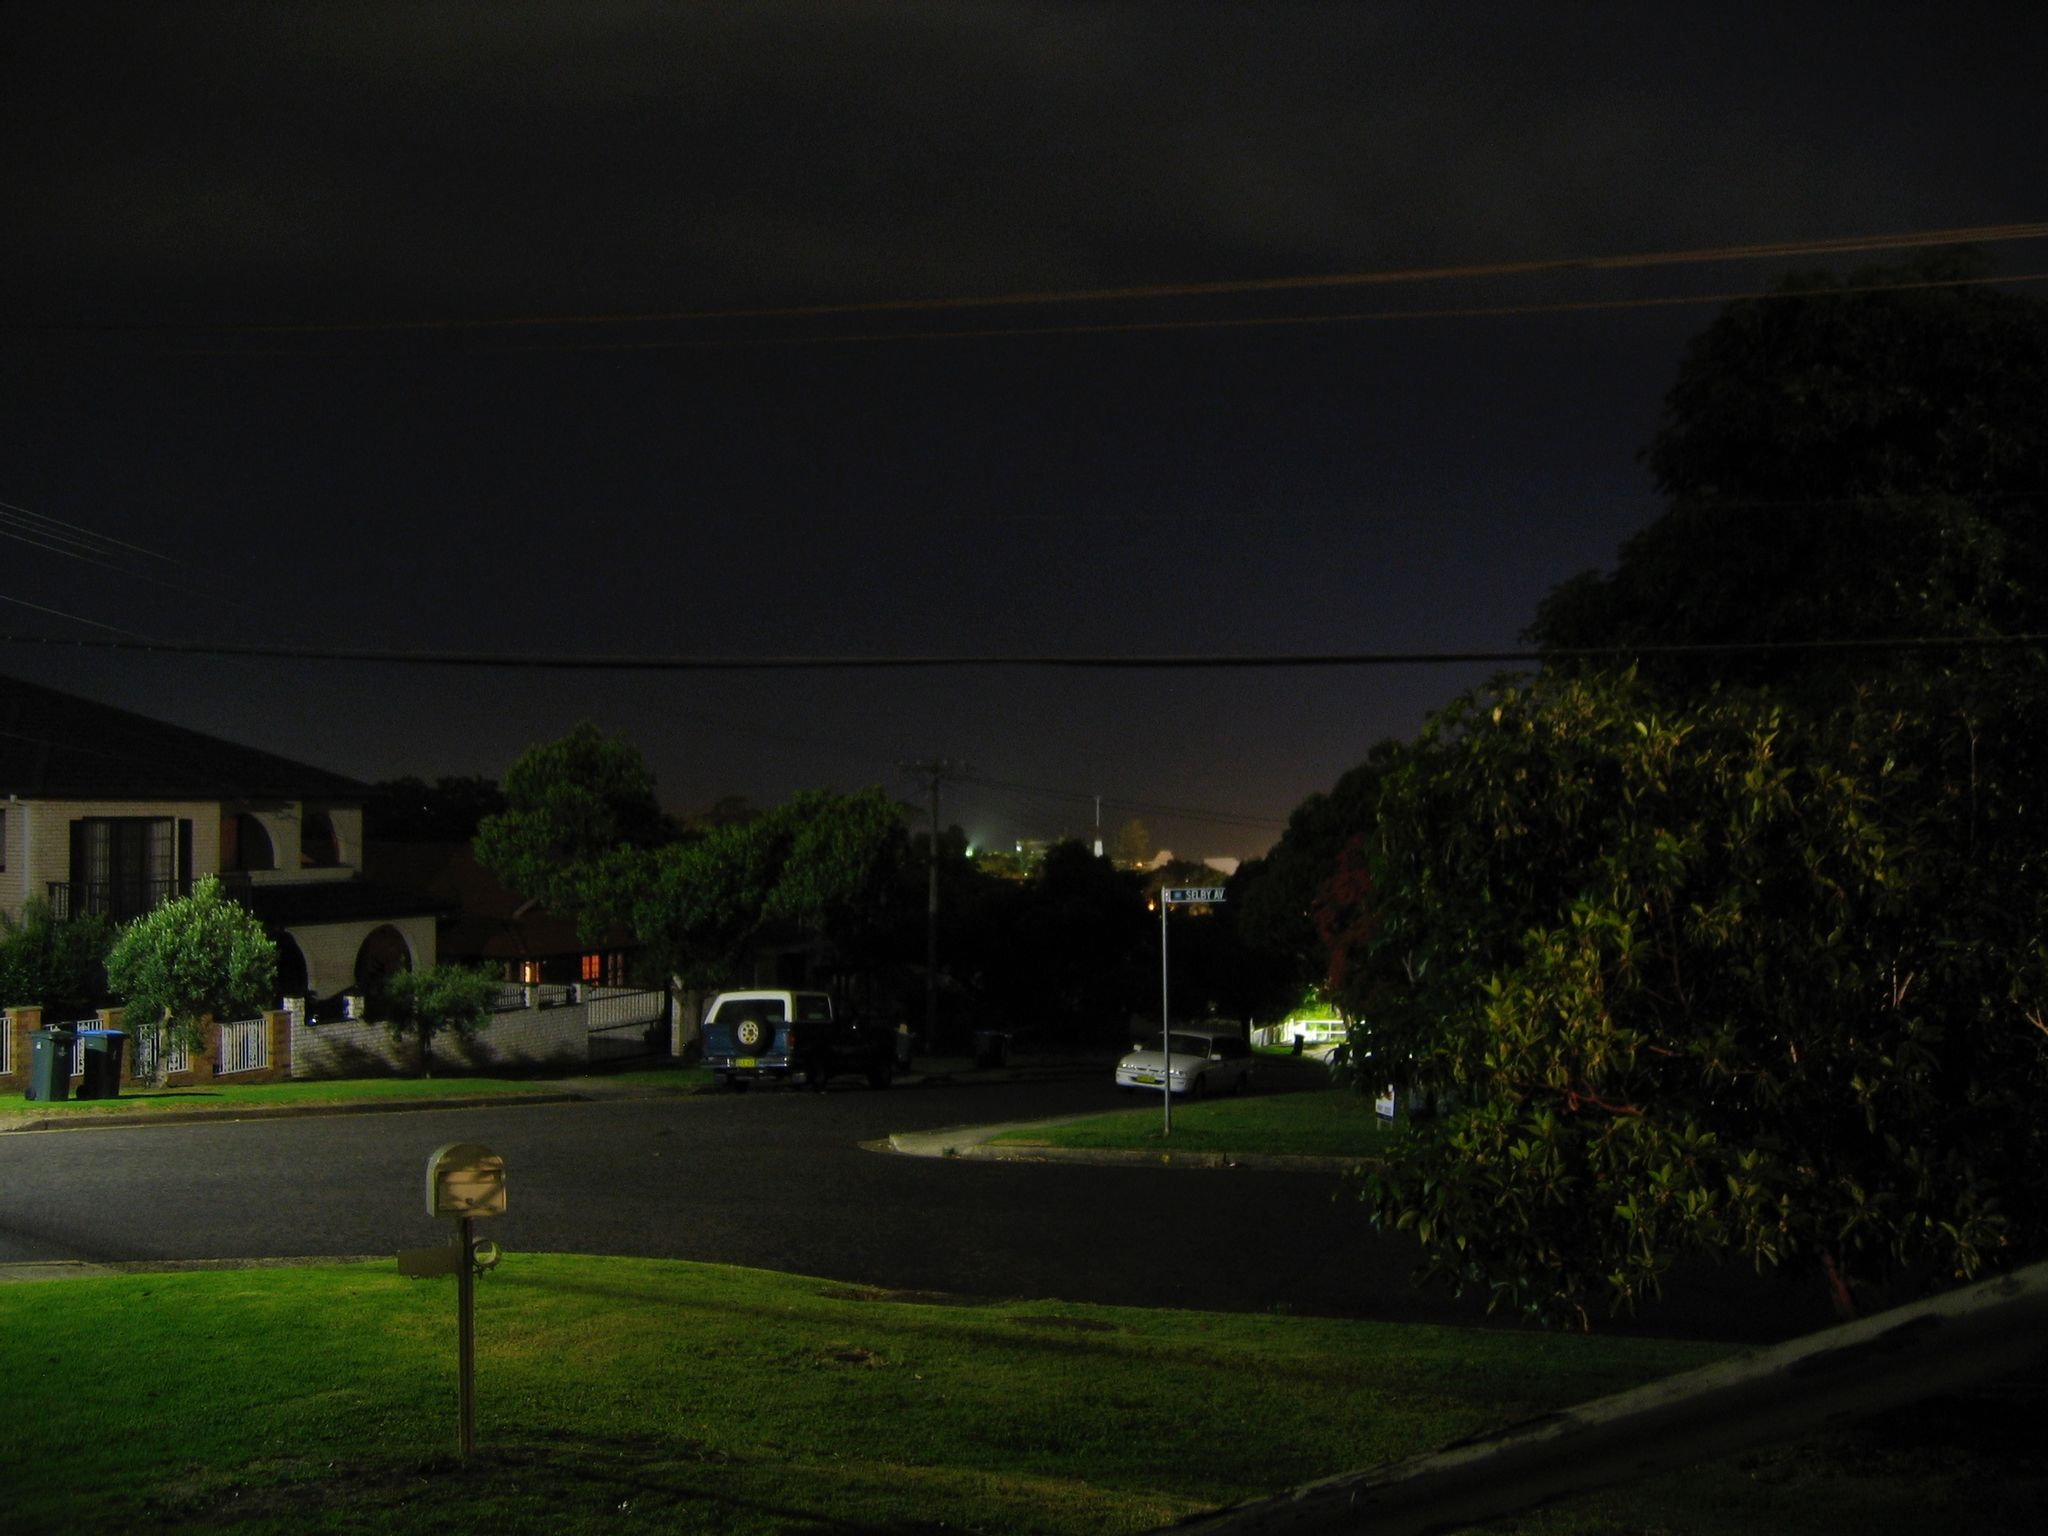 A long-exposure nighttime photo looking out at the street in front of a house. The left side is lit by a street light, and in the distance over the trees there's lights visible from distant buildings.